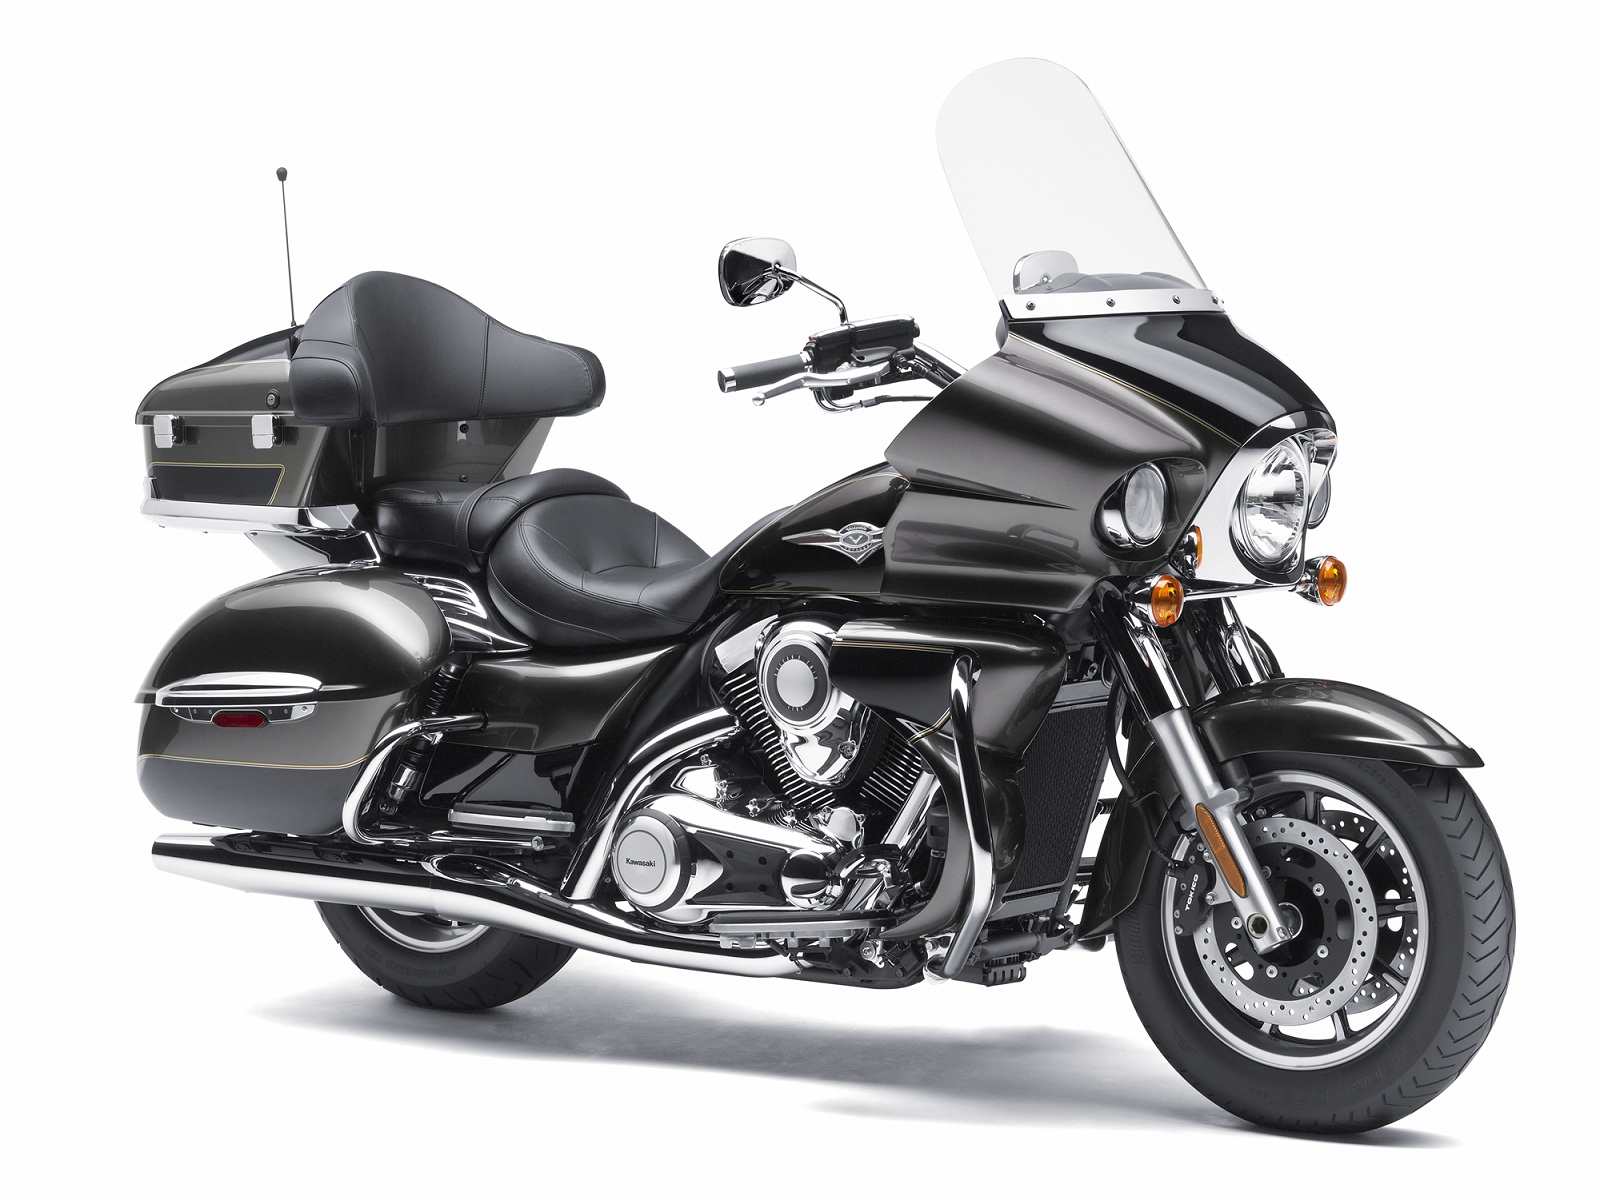 2011 kawasaki vulcan 1700 voyager abs review top speed. Black Bedroom Furniture Sets. Home Design Ideas